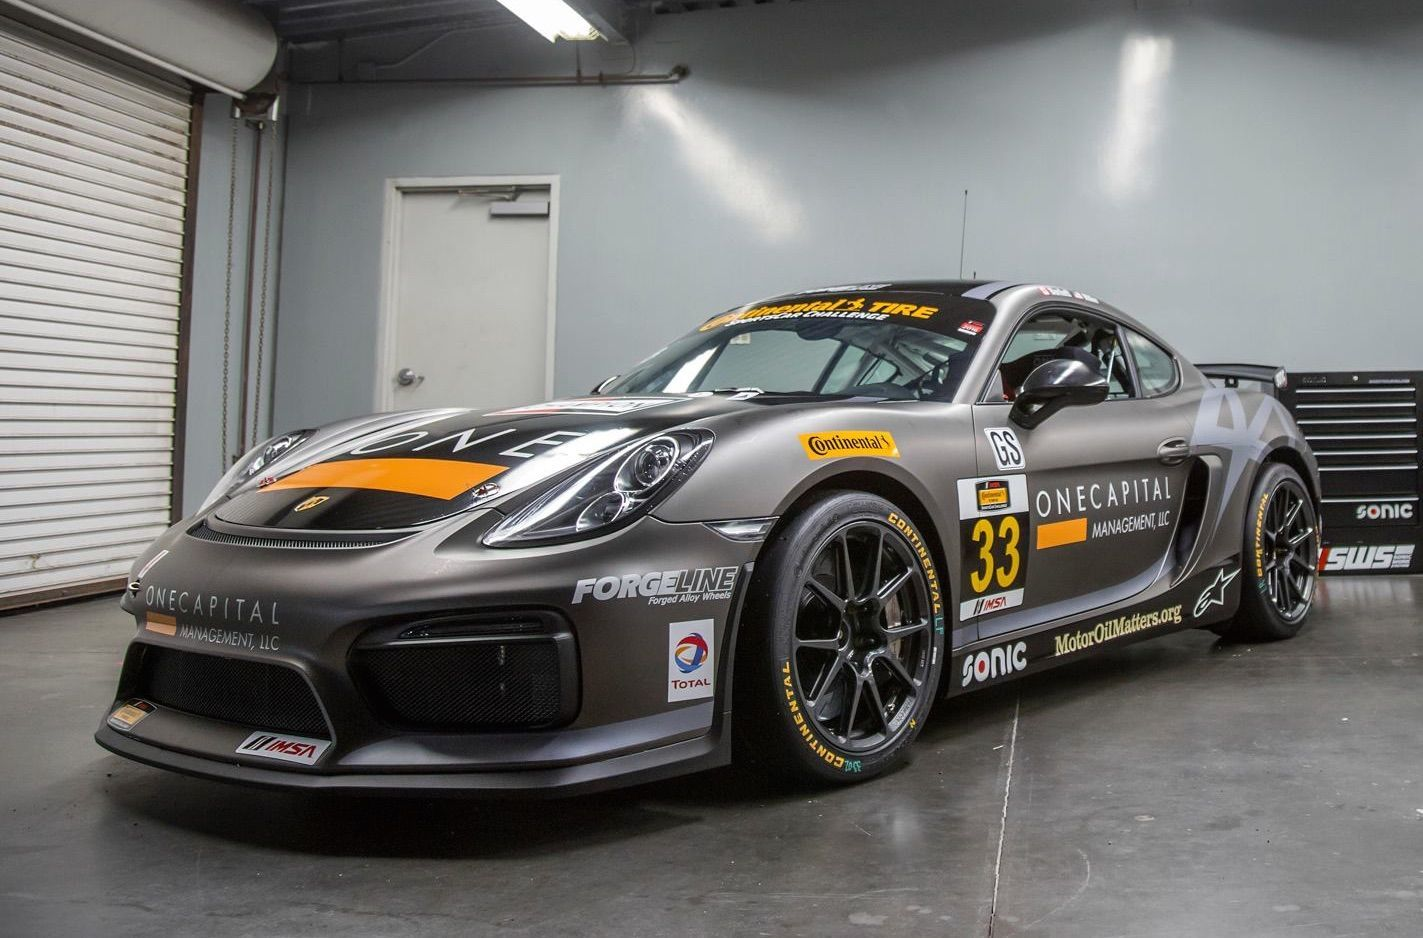 2016 Porsche Cayman | CJ Wilson Racing's GS Class Porsche Cayman Clubsport on Forgeline One PIece Forged Monoblock GS1R Wheels - Race Ready